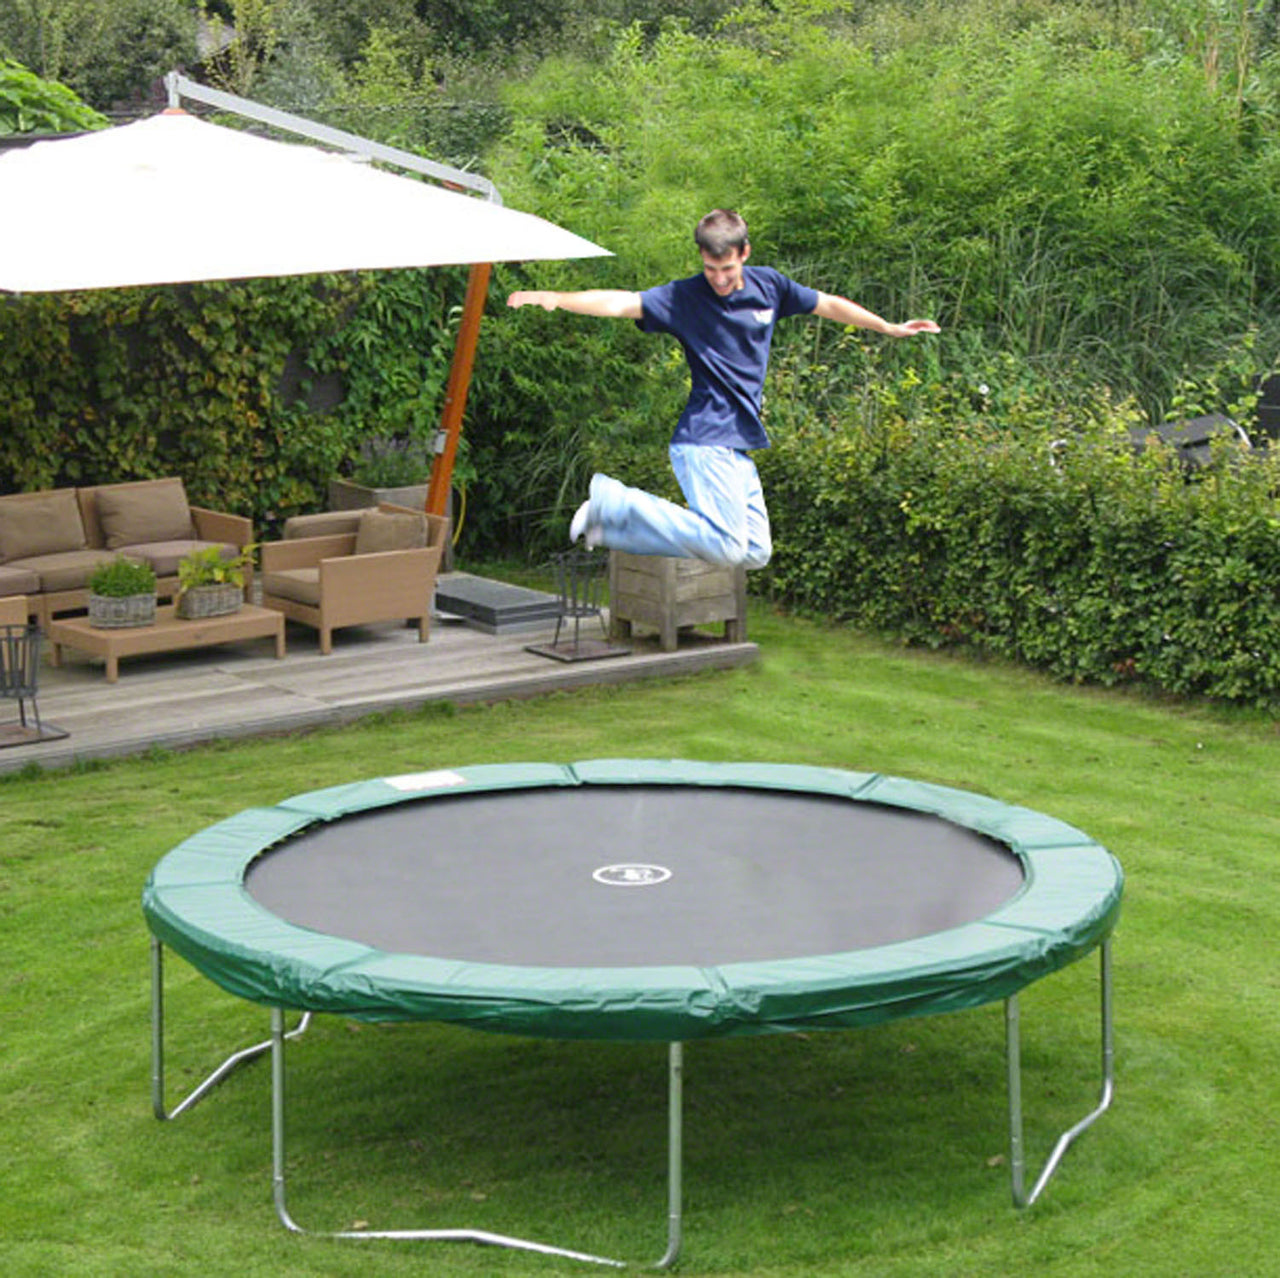 KidWise JumpFree 15 Foot Trampoline - Green (No Safety Enclosure) (KW-JFTR15E-G)